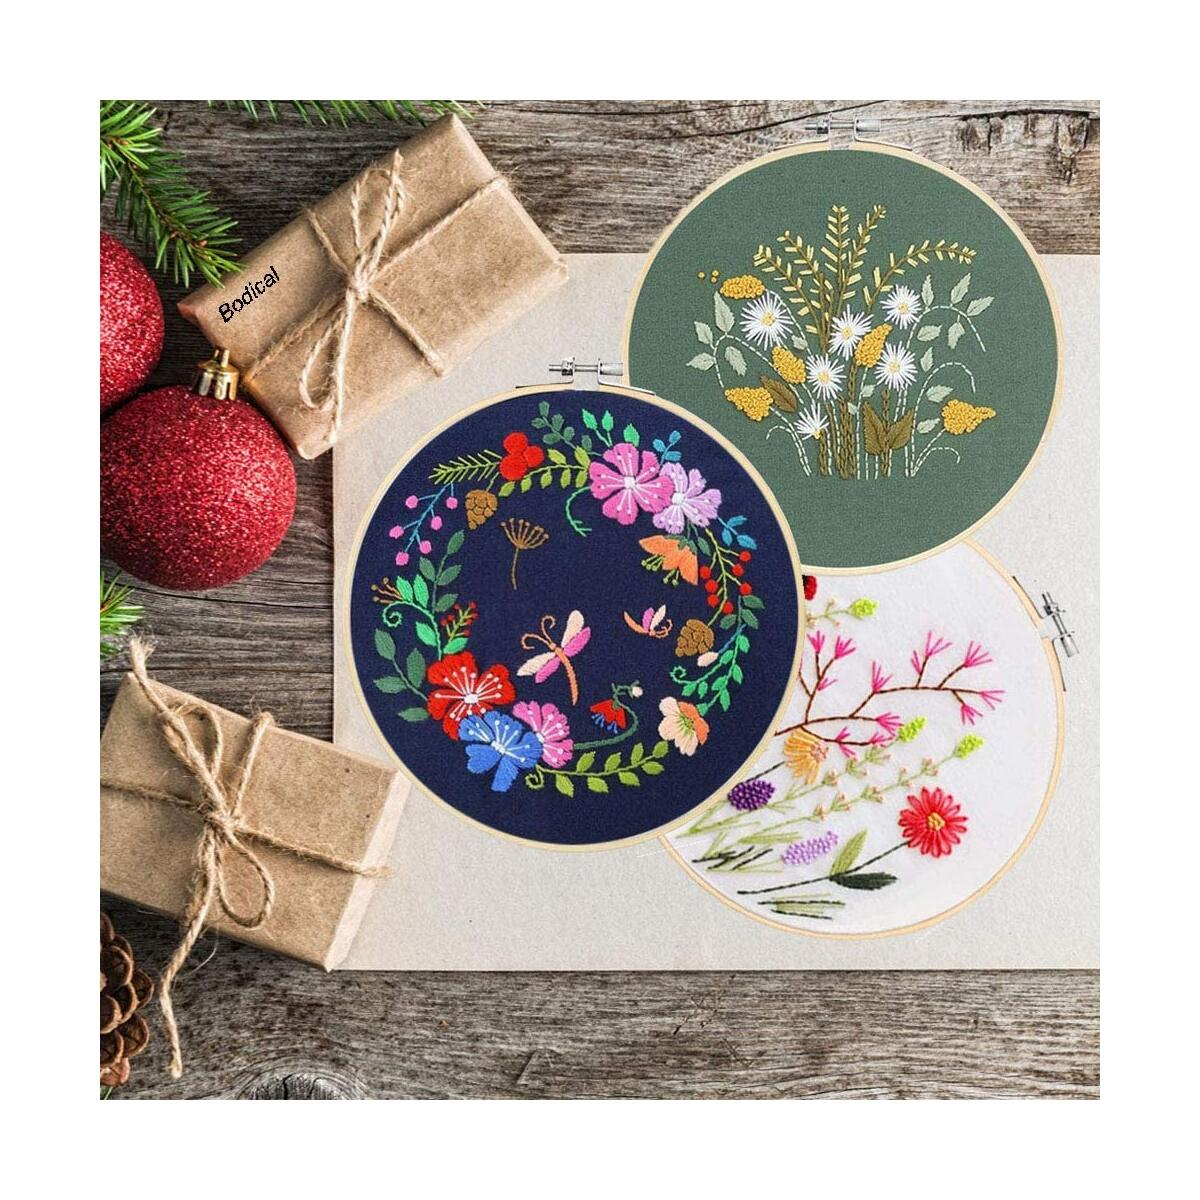 Embroidery Kit for Beginners, Cross Stitch Starter Kits Include 3 Sets Embroidery Fabric Cloth with Pattern, 3 Bamboo Embroidery Hoops, Color Embroidery Floss Threads, Embroidery Needles and Scissors